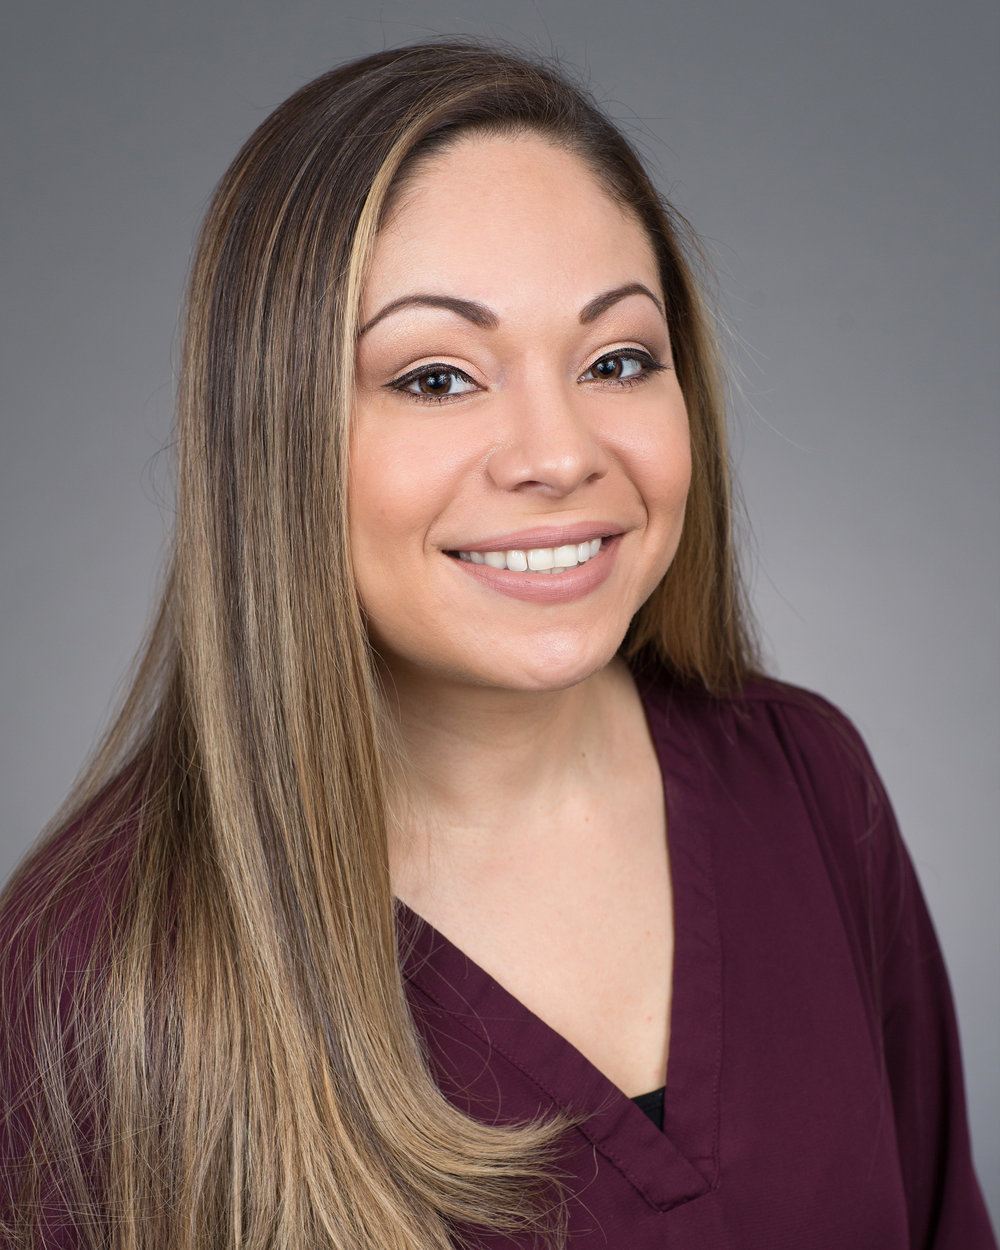 Christine valdez, licensed clinical psychologist ptsd and trauma treatment expert assistant professor of clinical psychology @ csu monterey bay